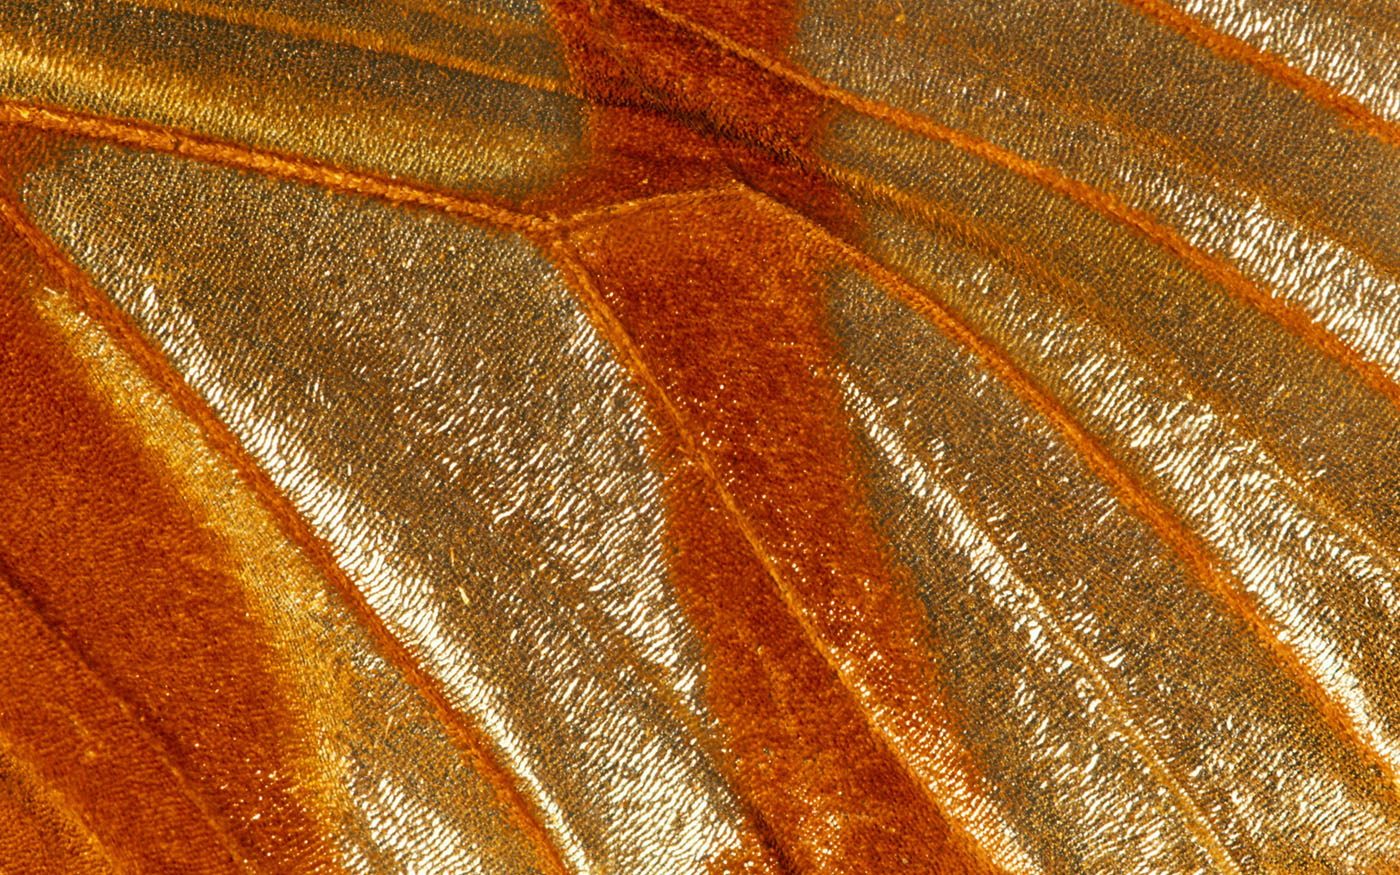 Feather wings close-up 1901